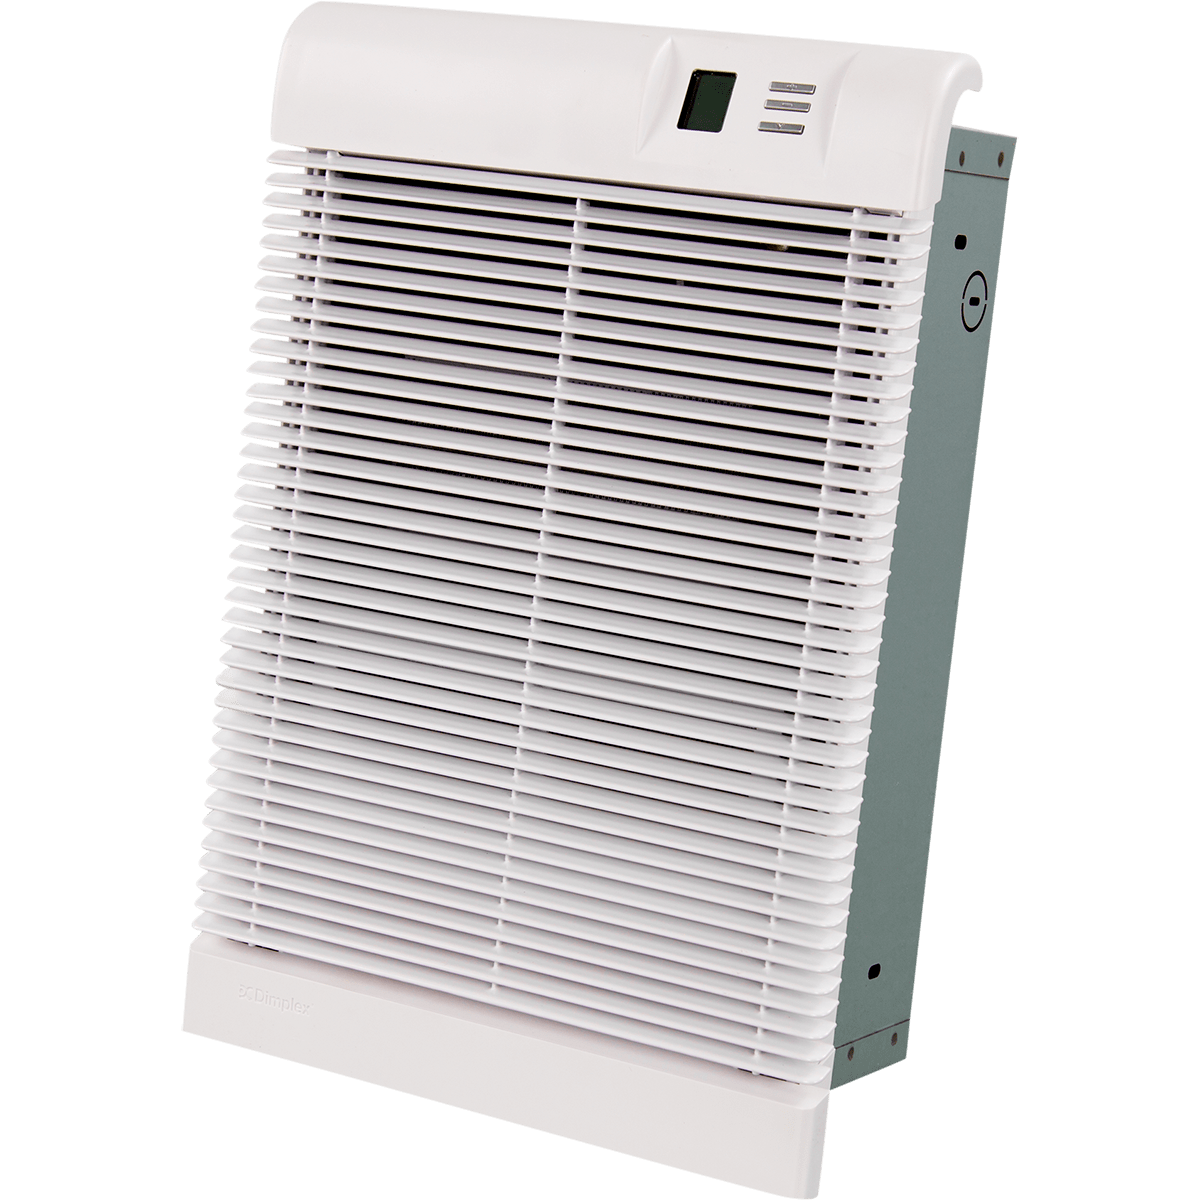 Dimplex Precision Comfort Fan-Forced Wall Heater